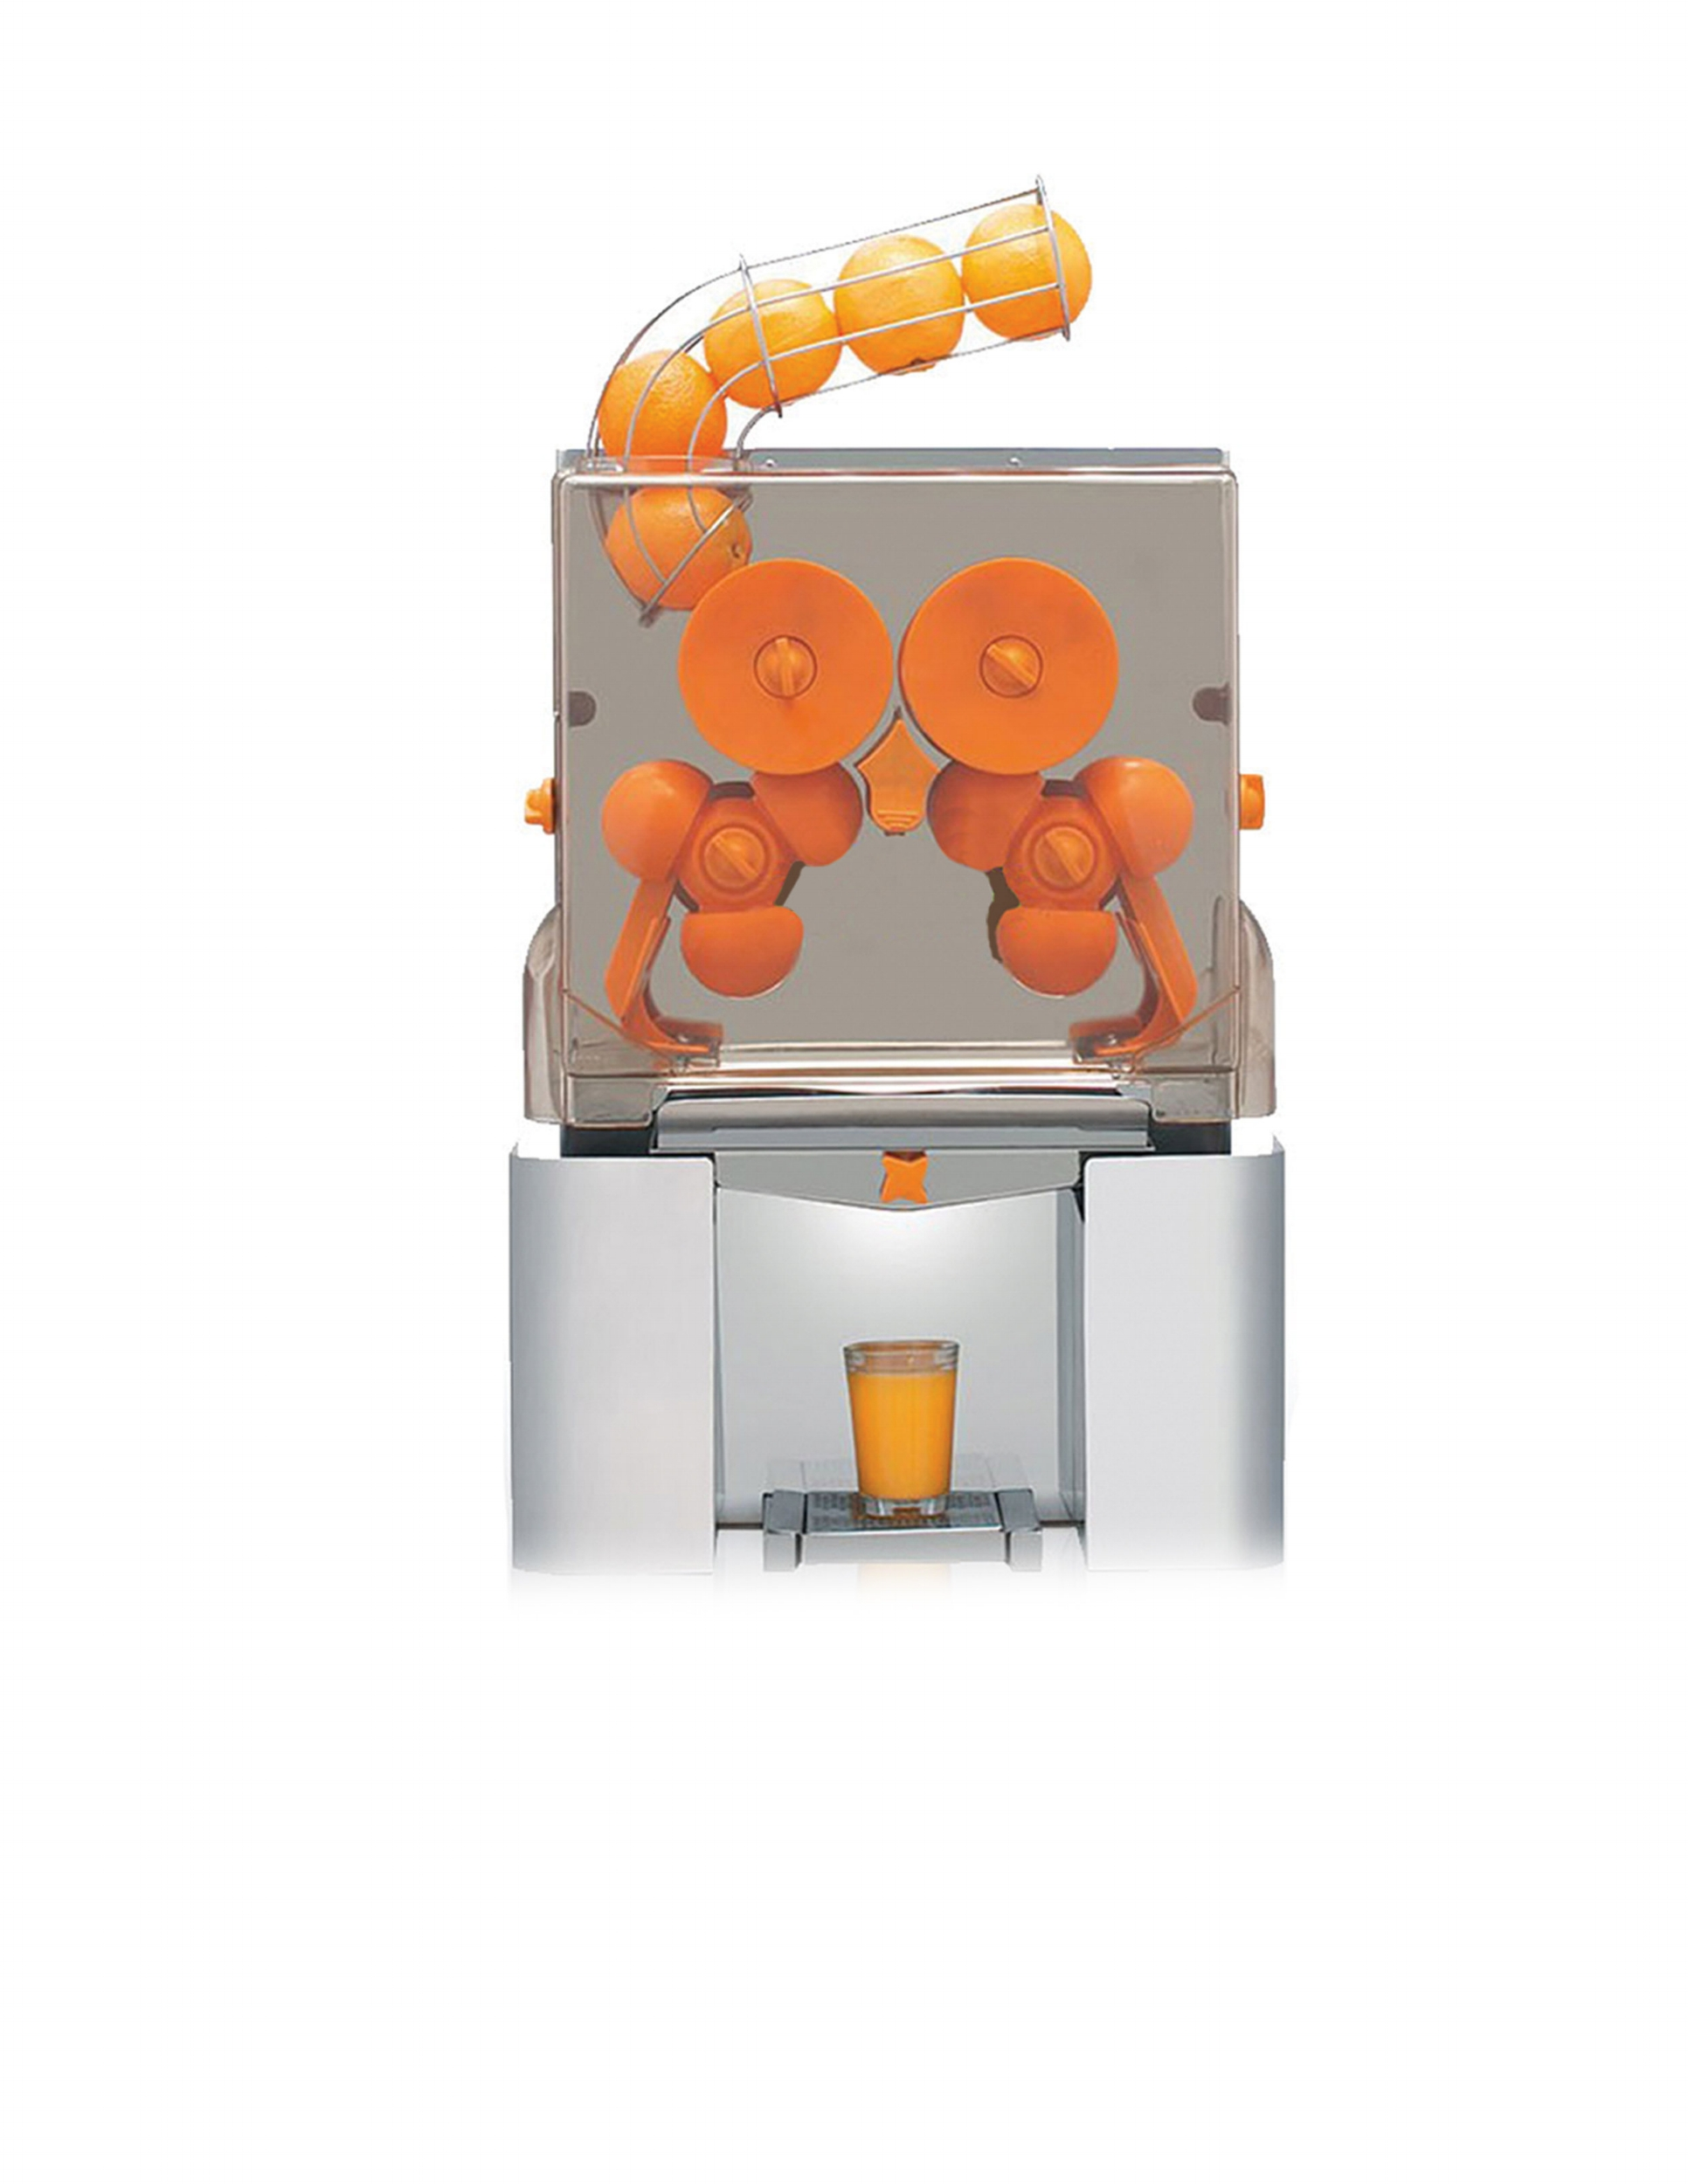 Cruz S10 Commercial Juicer